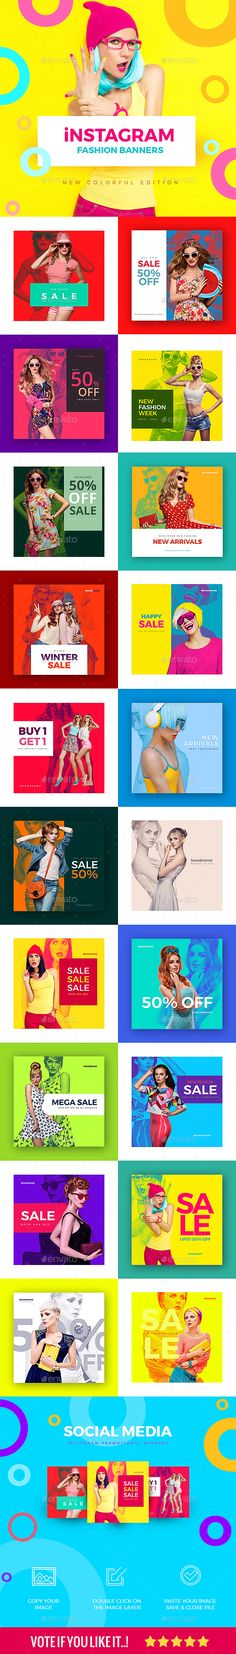 20 Fashion Instagram Banners